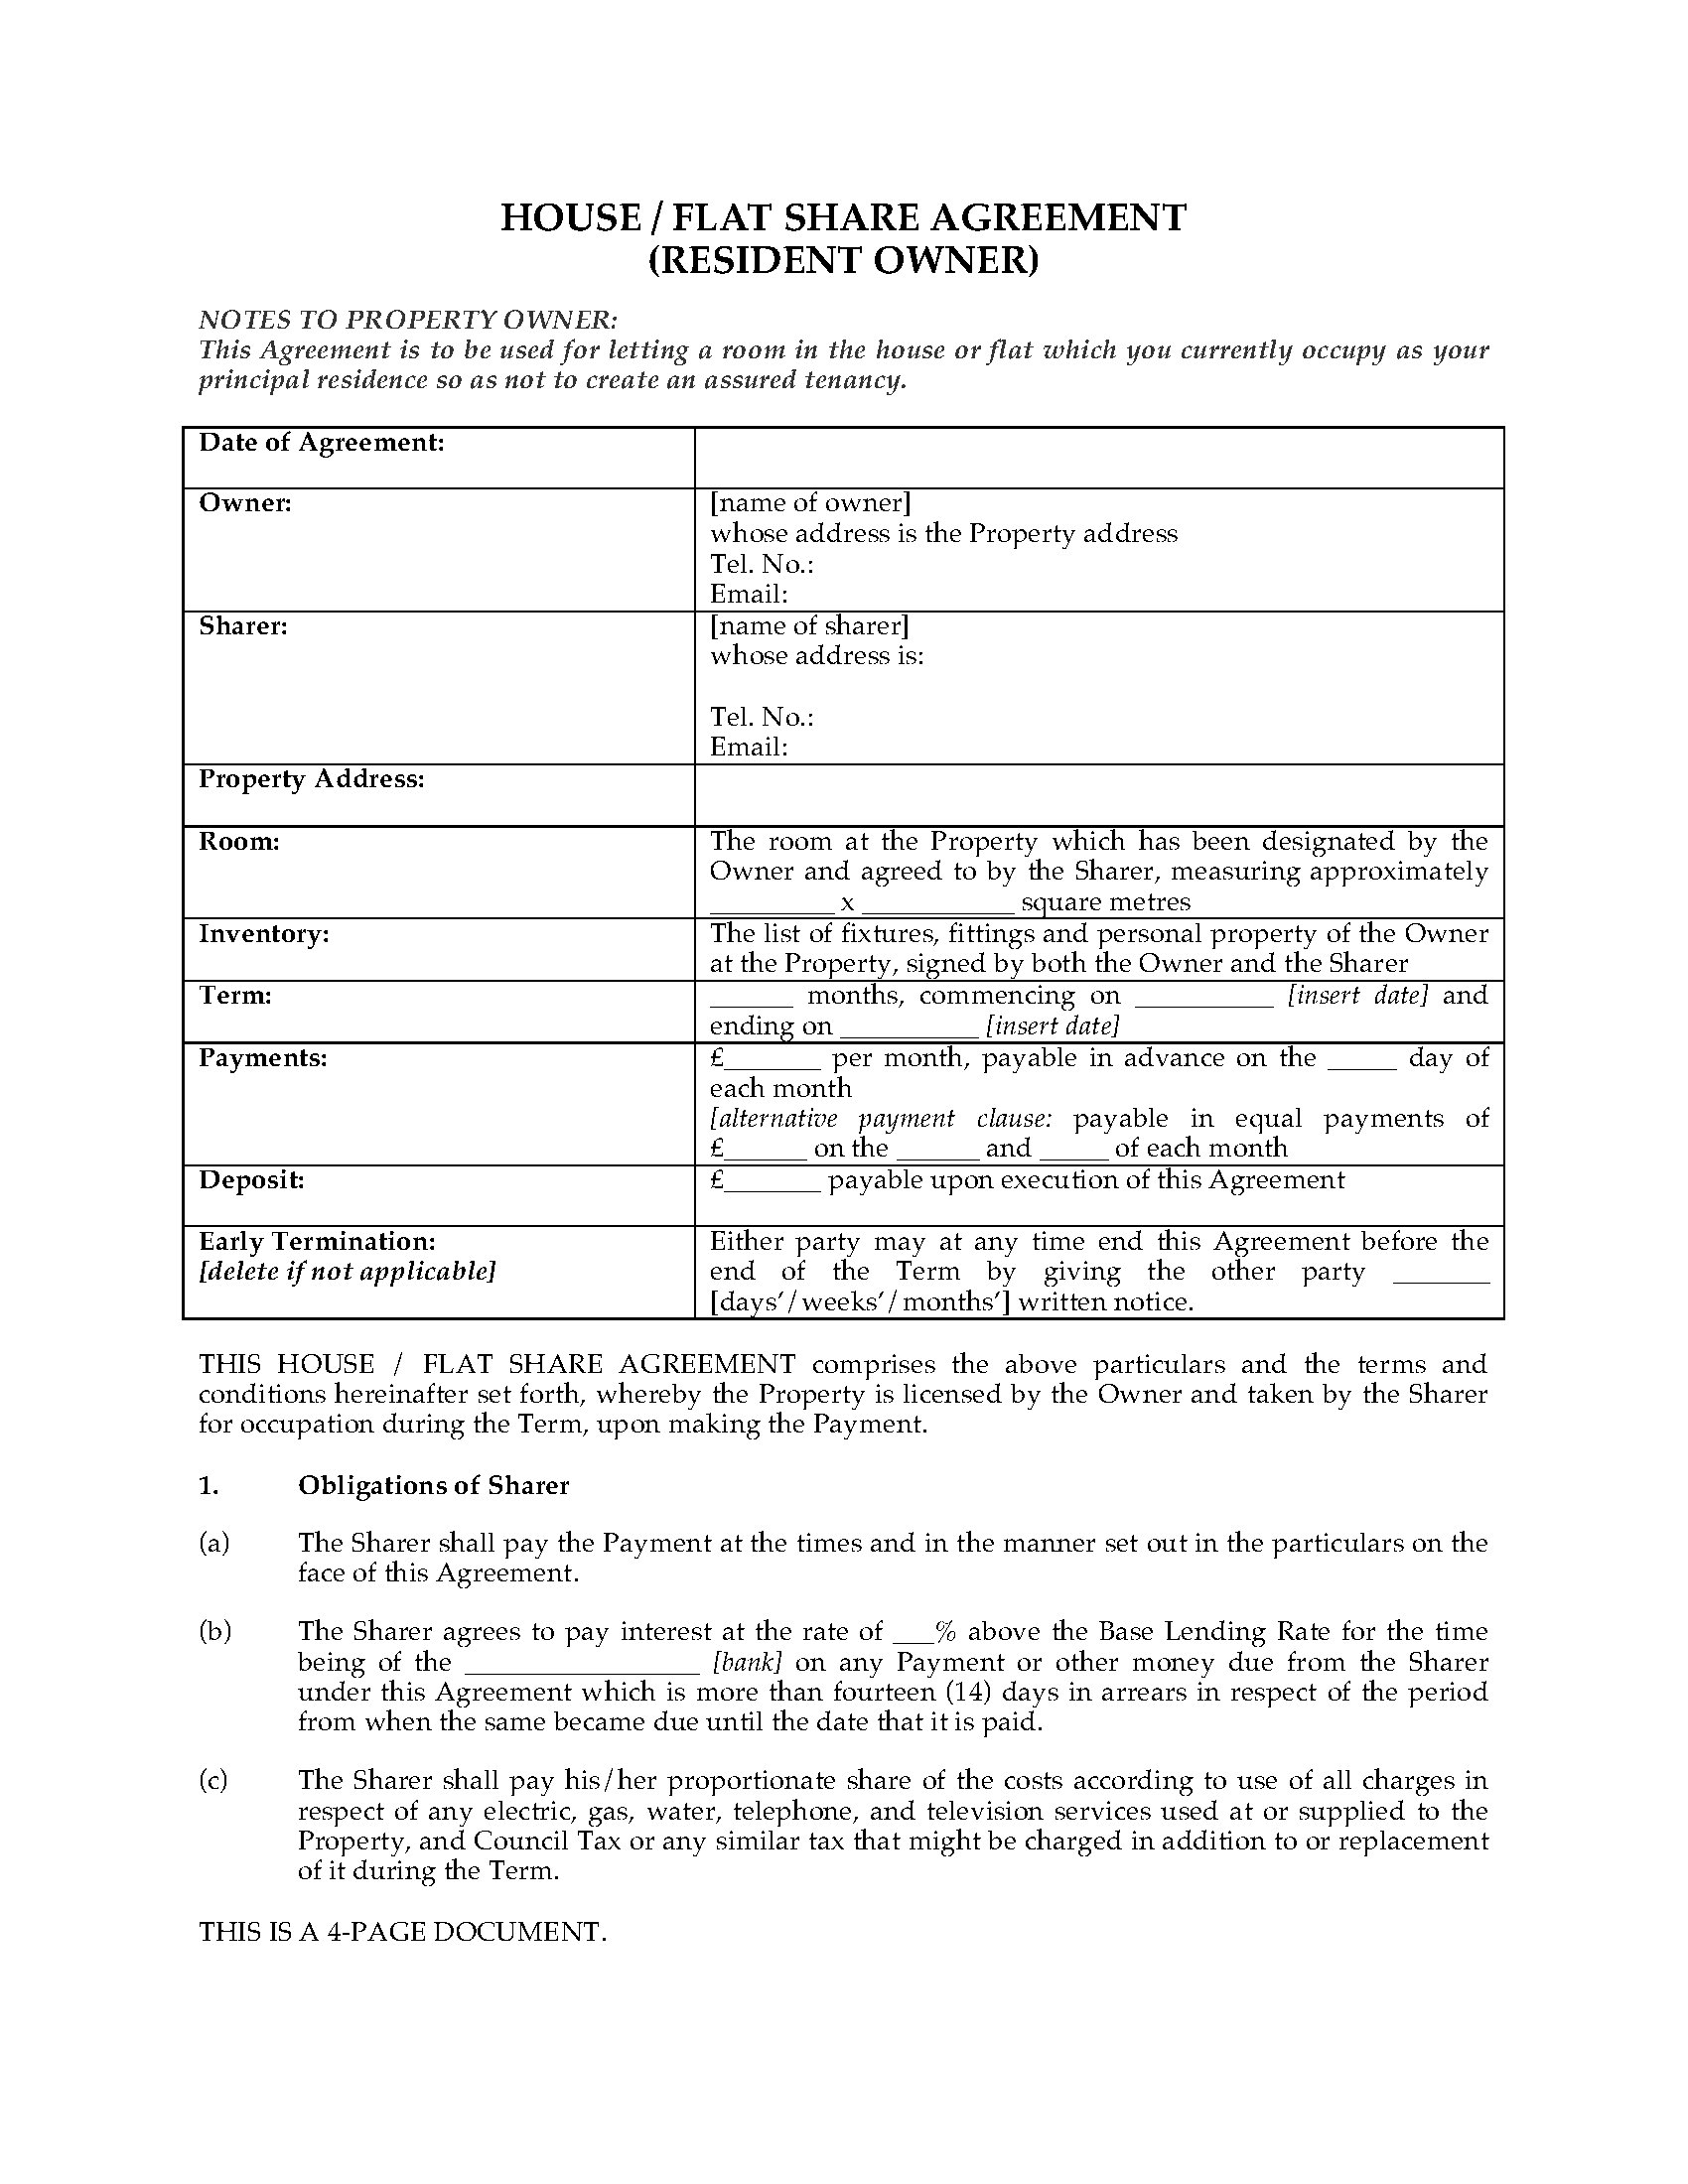 Uk house flat share agreement with resident owner for House sharing agreement template